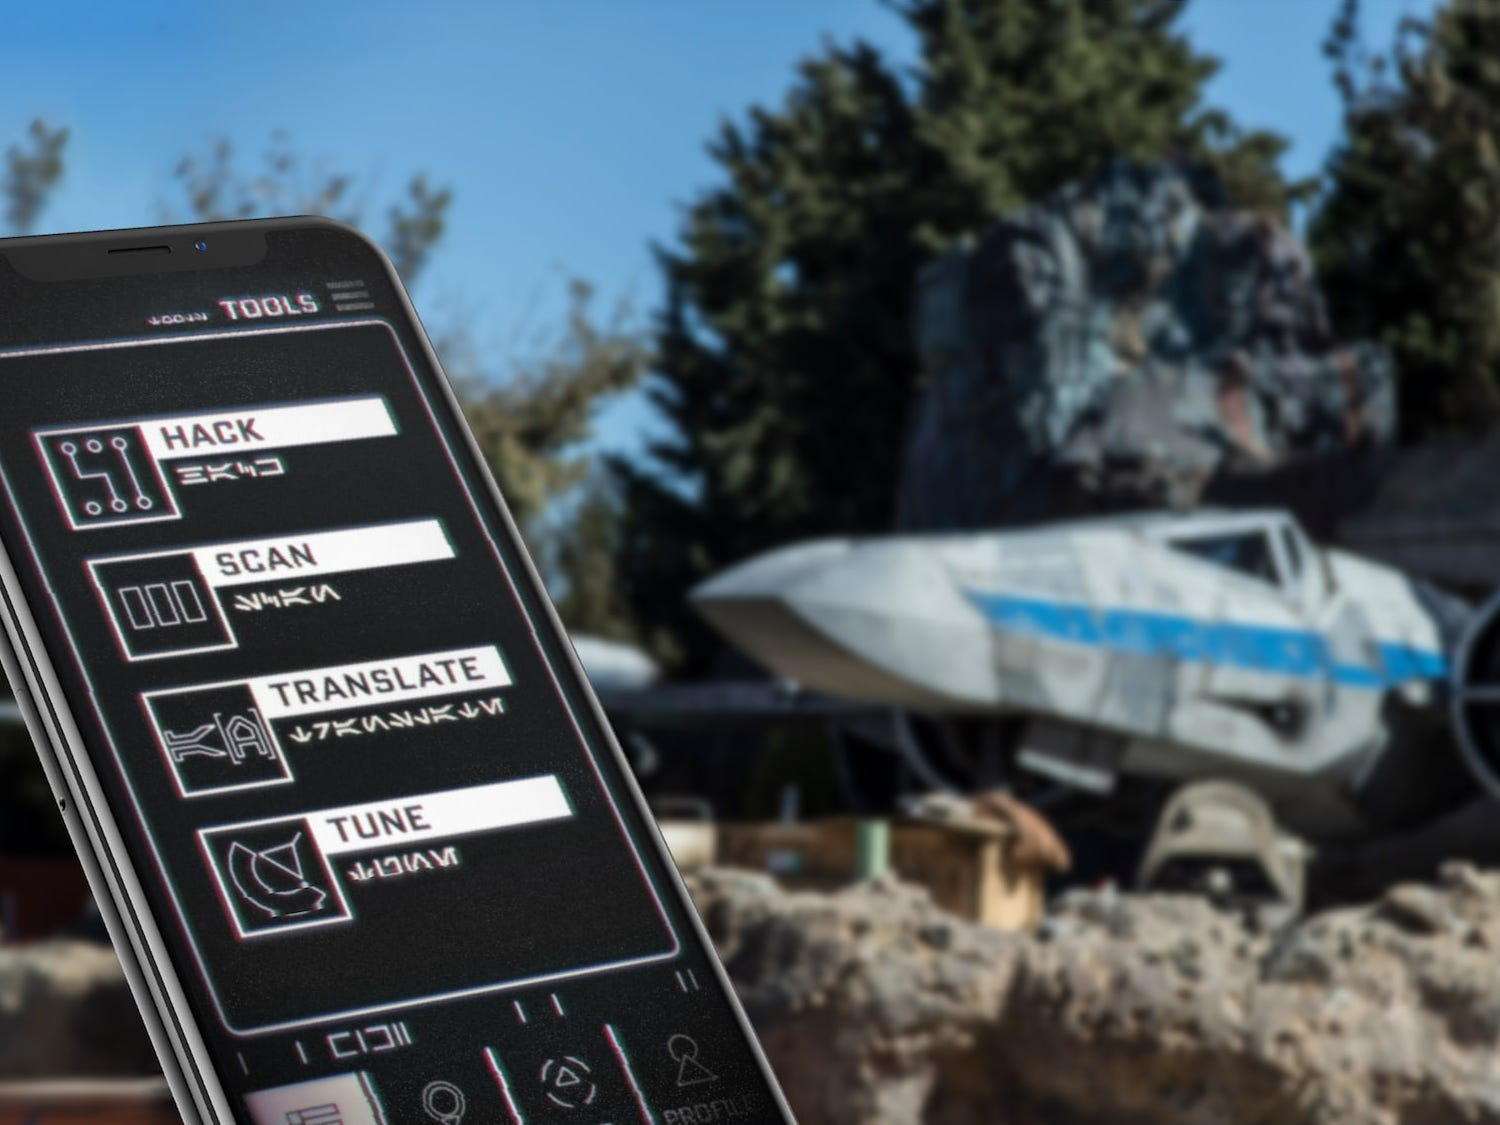 The Play Disney Parks app transforms into a data pad once inside Star Wars: Galaxy's Edge, opening May 31 at Disneyland and Aug. 29 at Disney World.